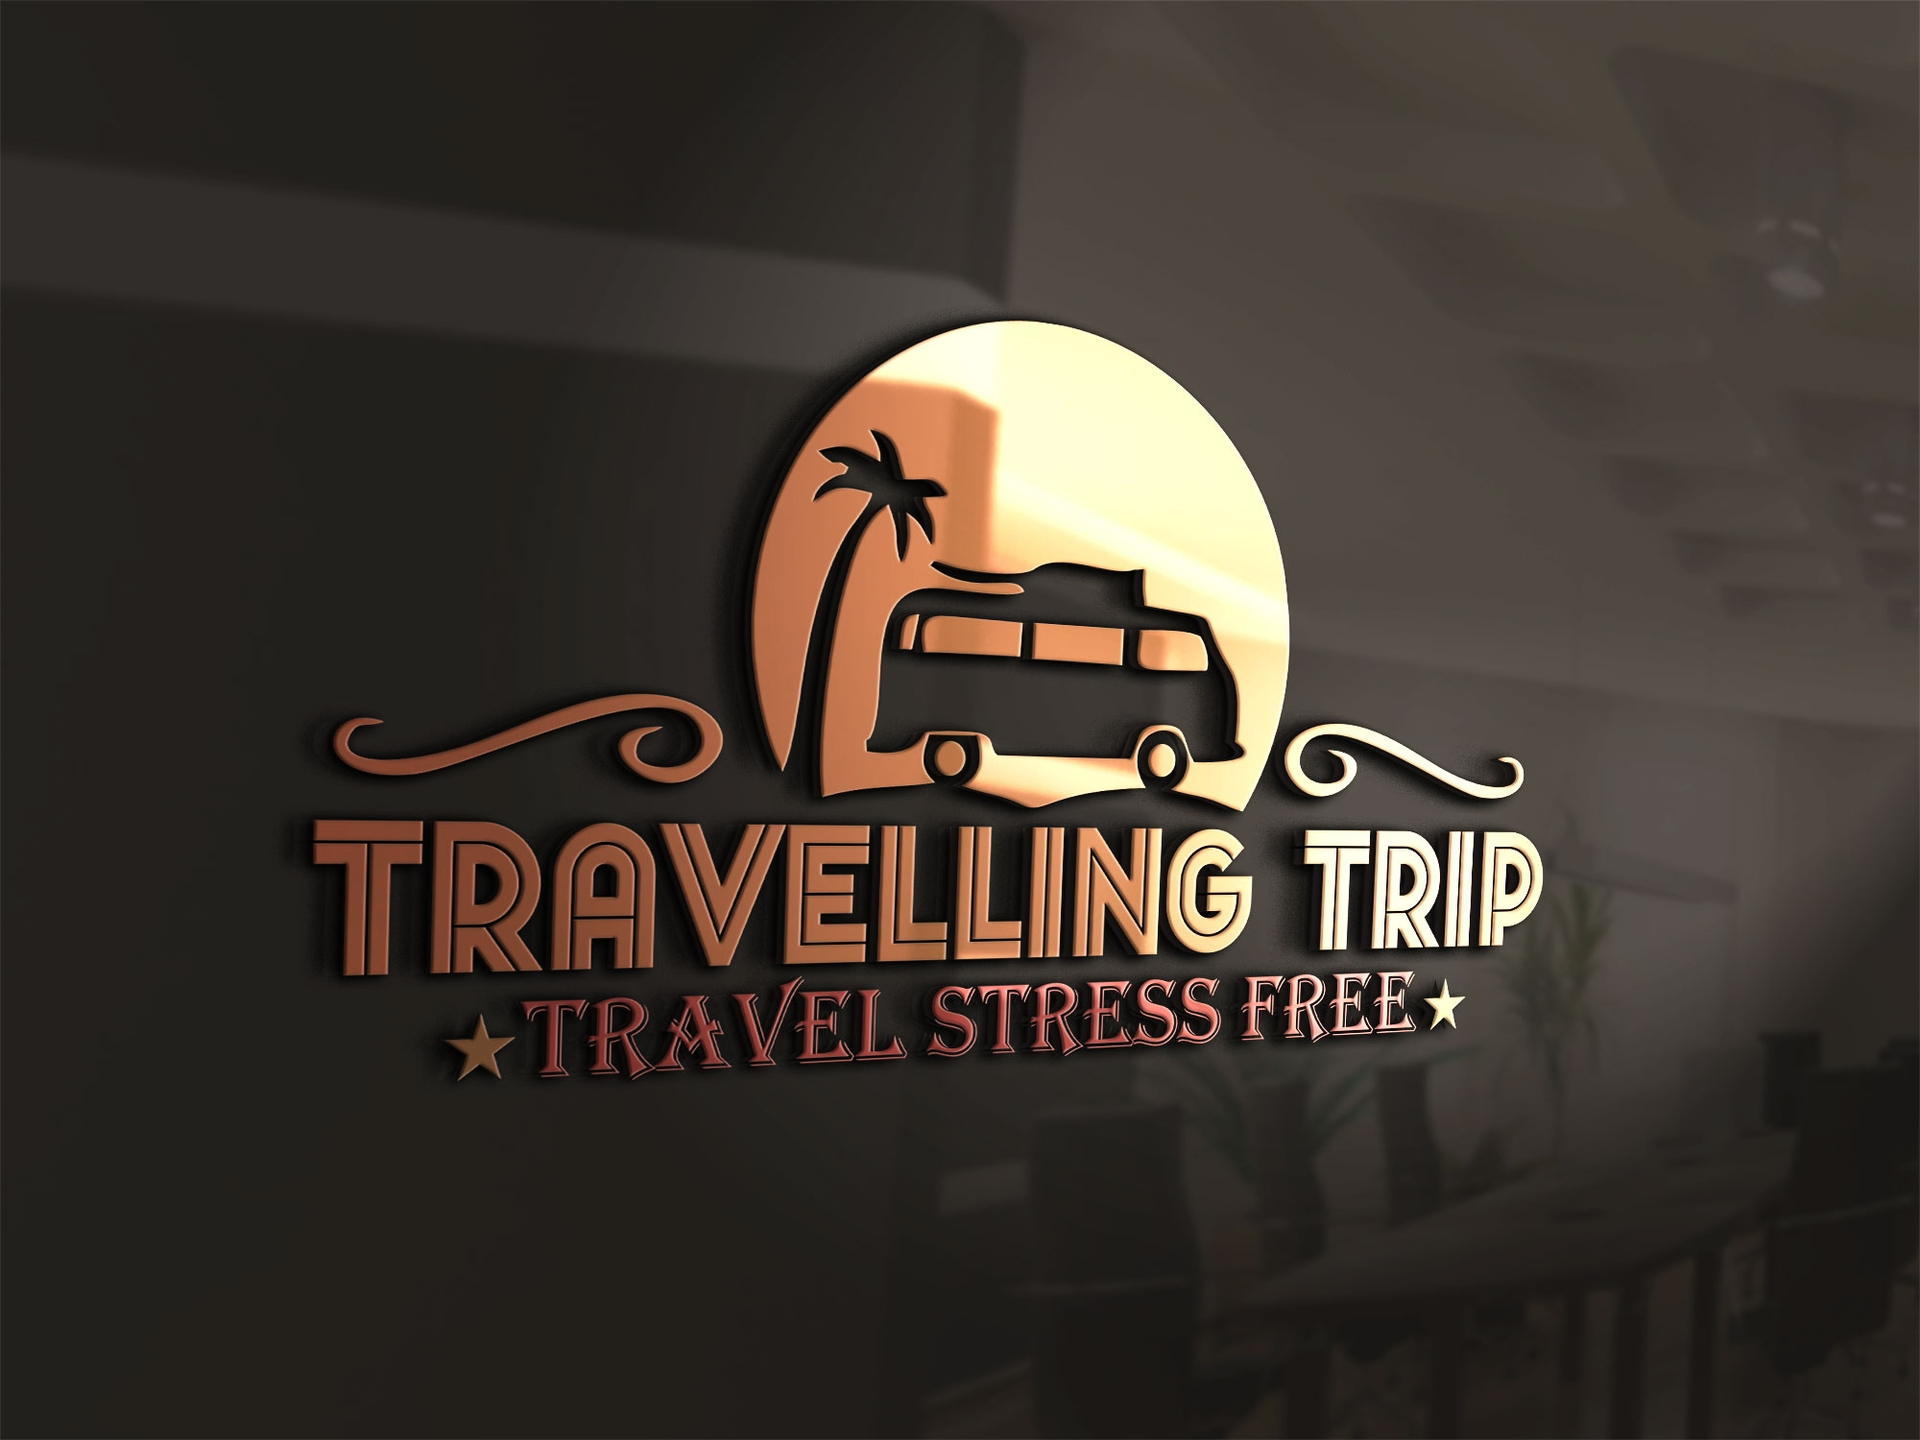 travellingtrip (@travellingtrip) Cover Image